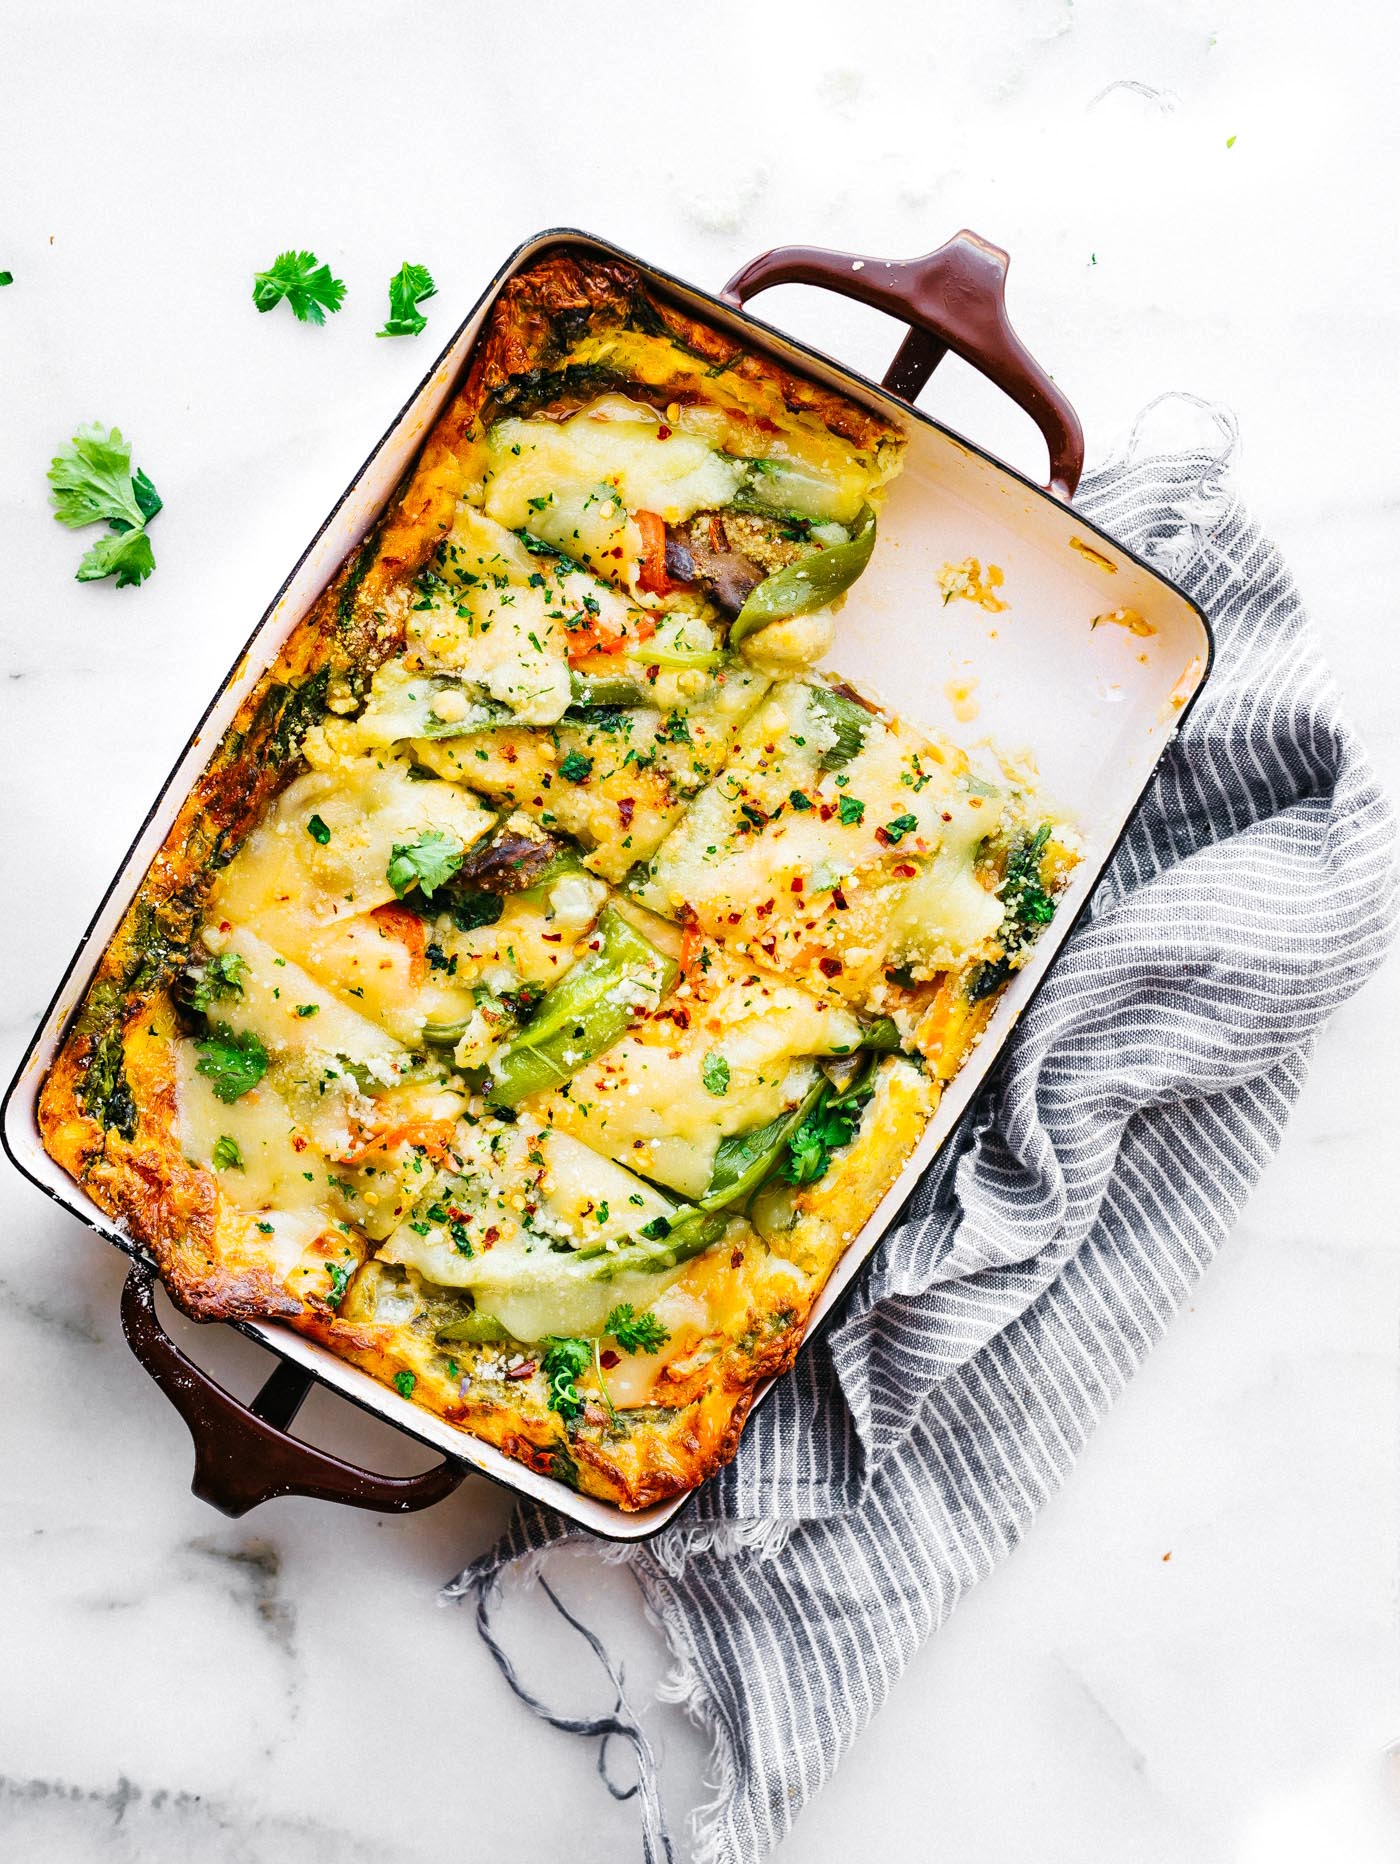 This Roasted Hatch Green Chile egg casserolemakes for a quick breakfast, lunch, or dinner! An egg casserole with layers of green chiles, artisan cheese, spinach, and other vegetables. It's wholesome yet light and delicious! Grain free, gluten free, and easy to make